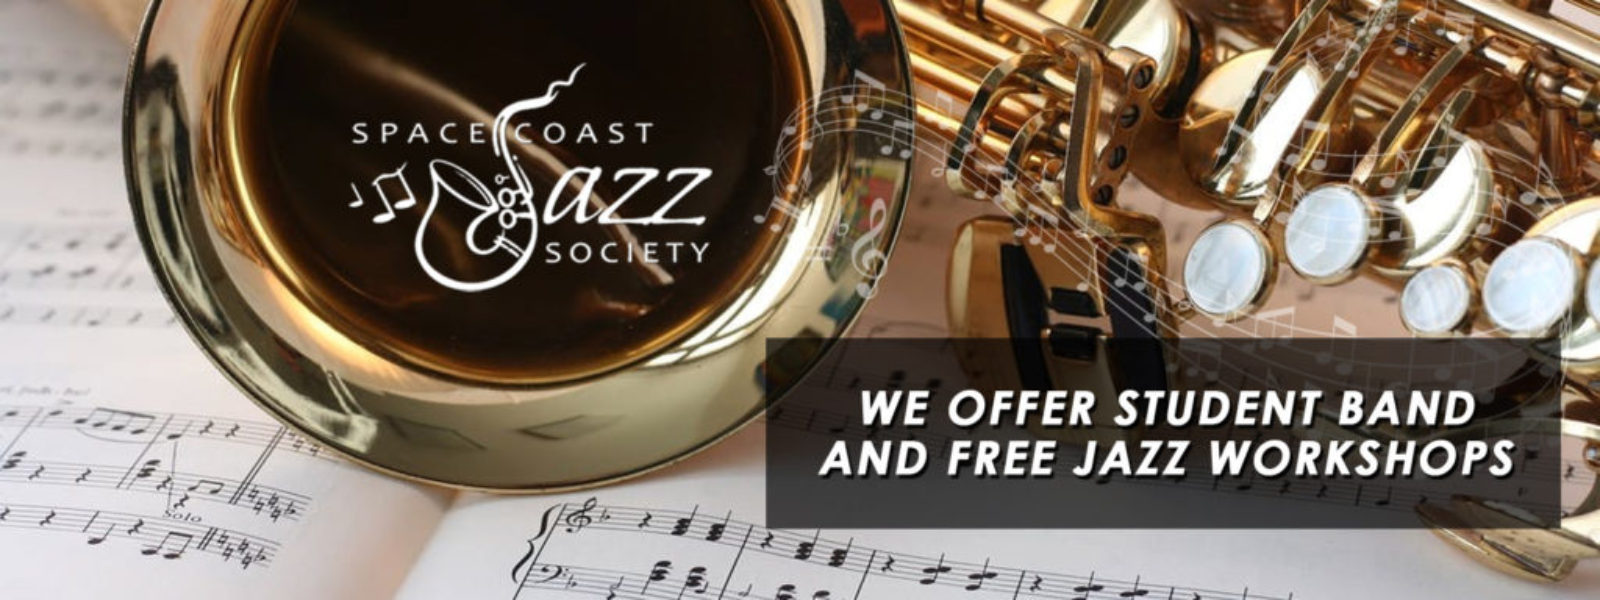 Space-Coast-Jazz-Society-Workshops